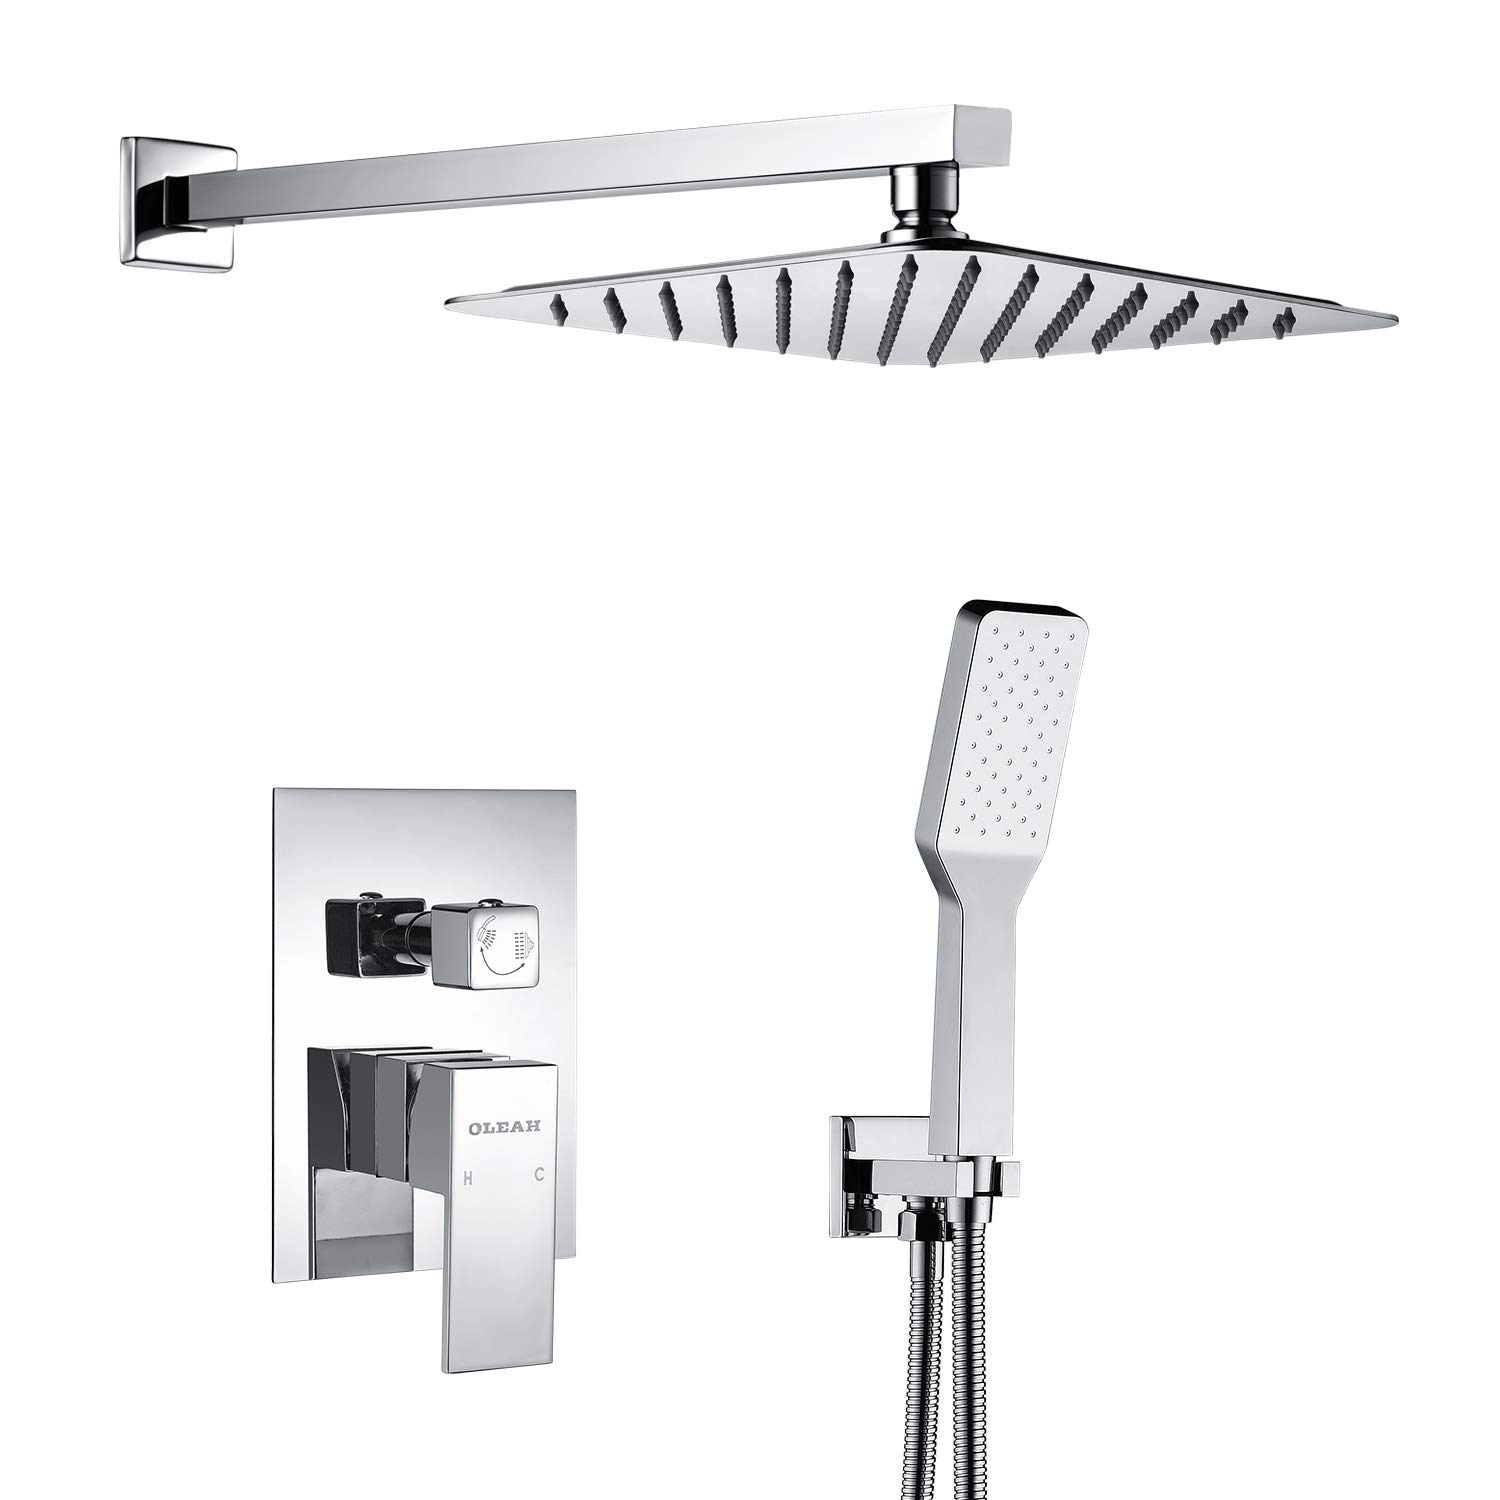 OLEAH Bathroom Rain Mixer Shower Faucet Combo Set Wall Mounted Shower System Polished Chrome with Rainfall Shower & Handheld Shower Head with Automatic Nozzie Cleaning,Including Control Rough-in Valve